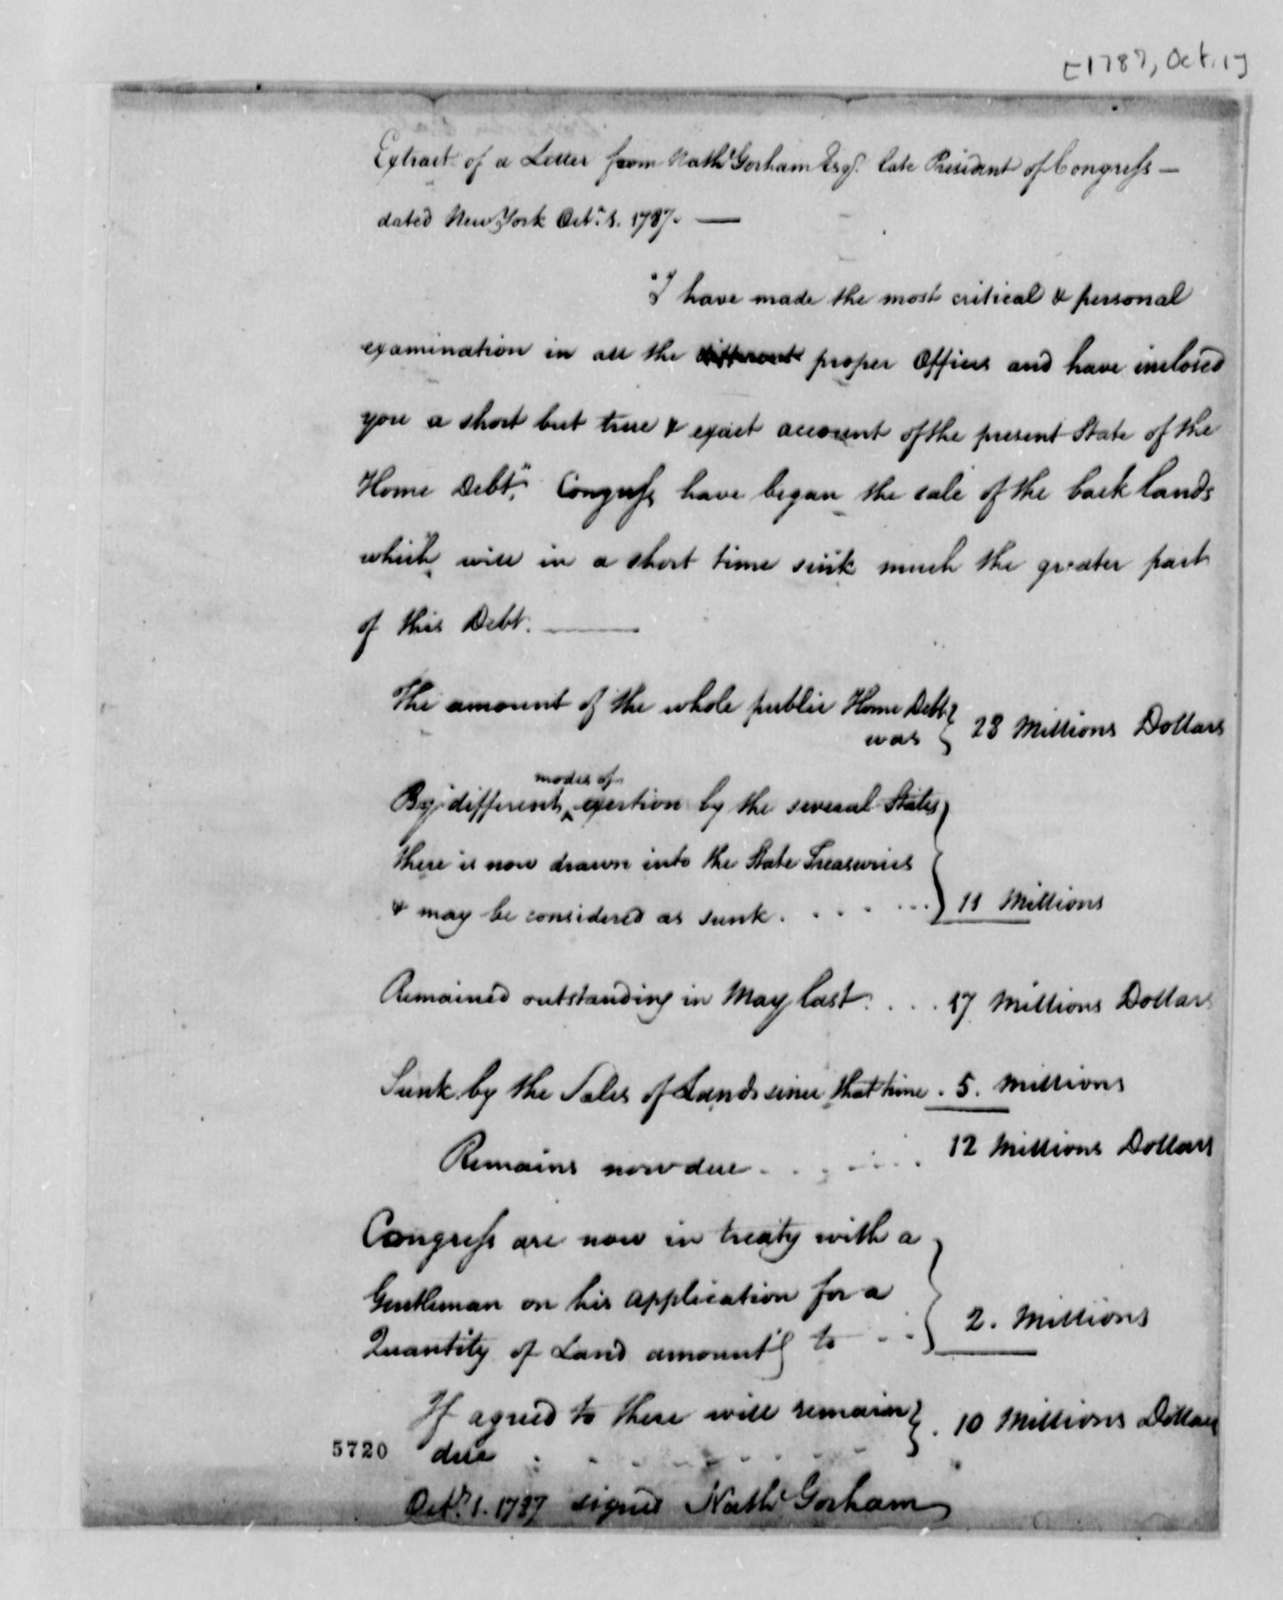 Nathaniel Gorham to Thomas Jefferson, October 1, 1787, Extract from Account of United States Domestic Debt